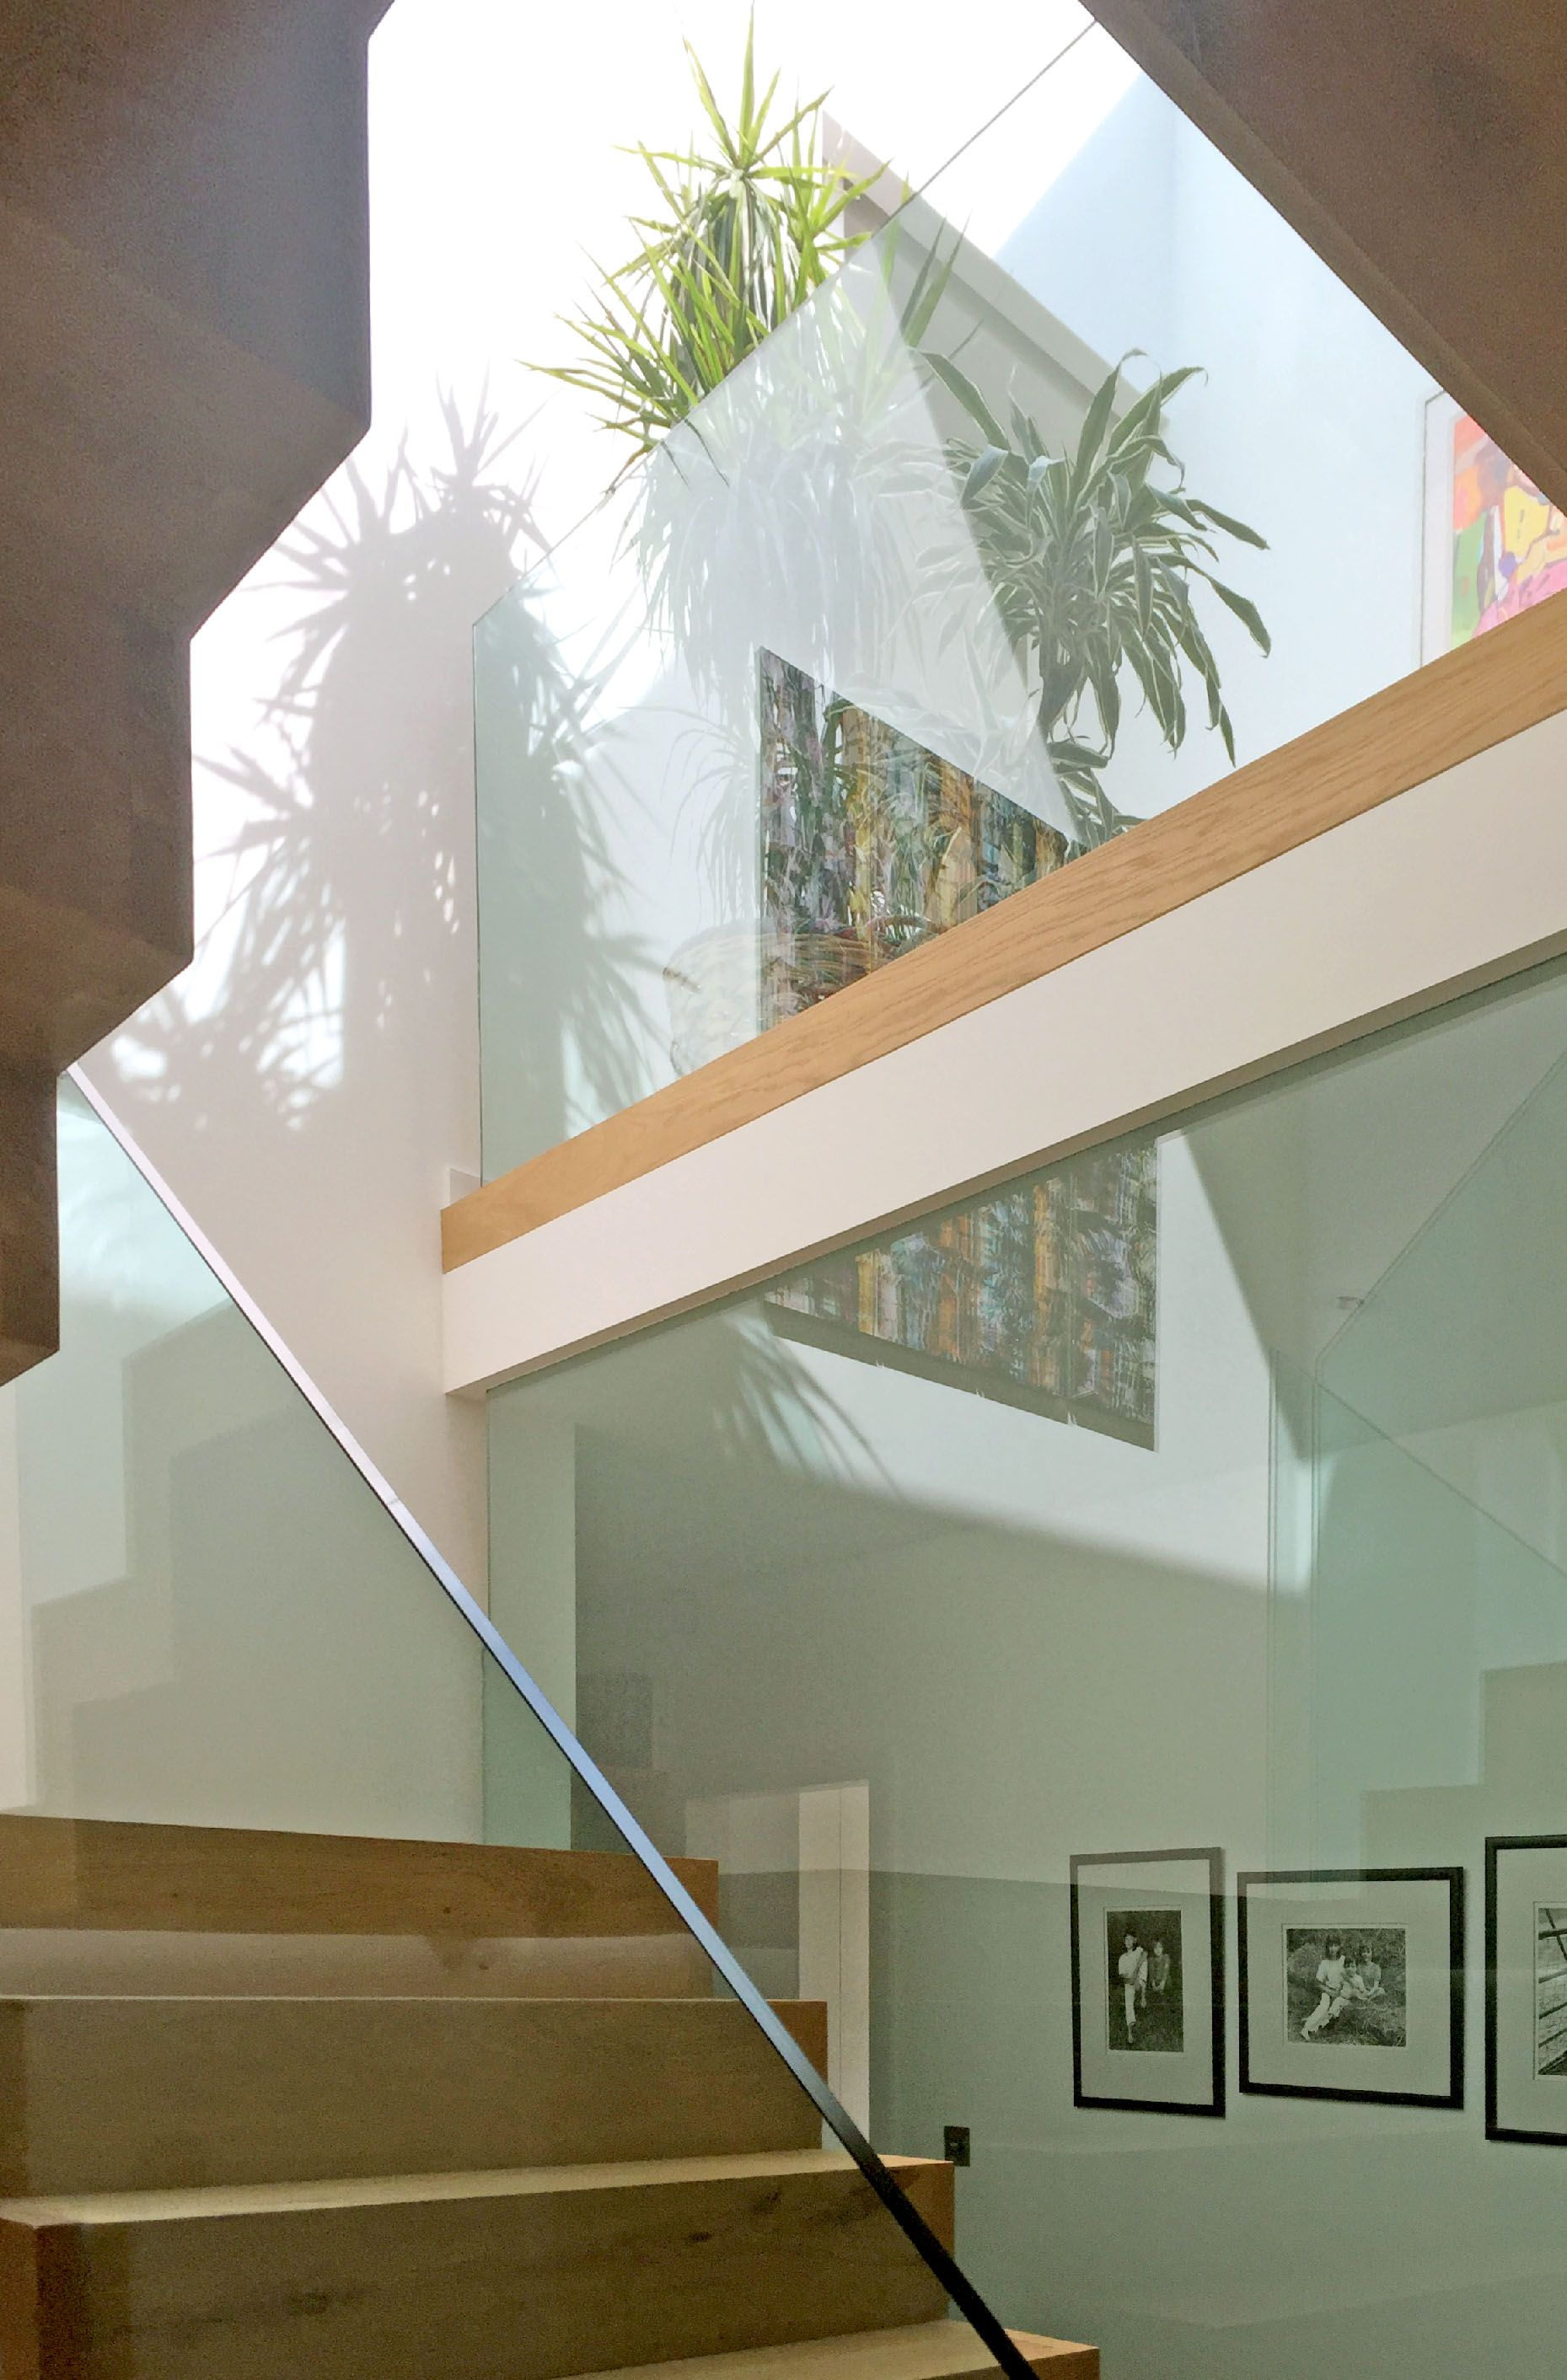 Best Glazed Staircase Allows Views Through To Others Floors For Maximum Light And Space Connectivity 400 x 300